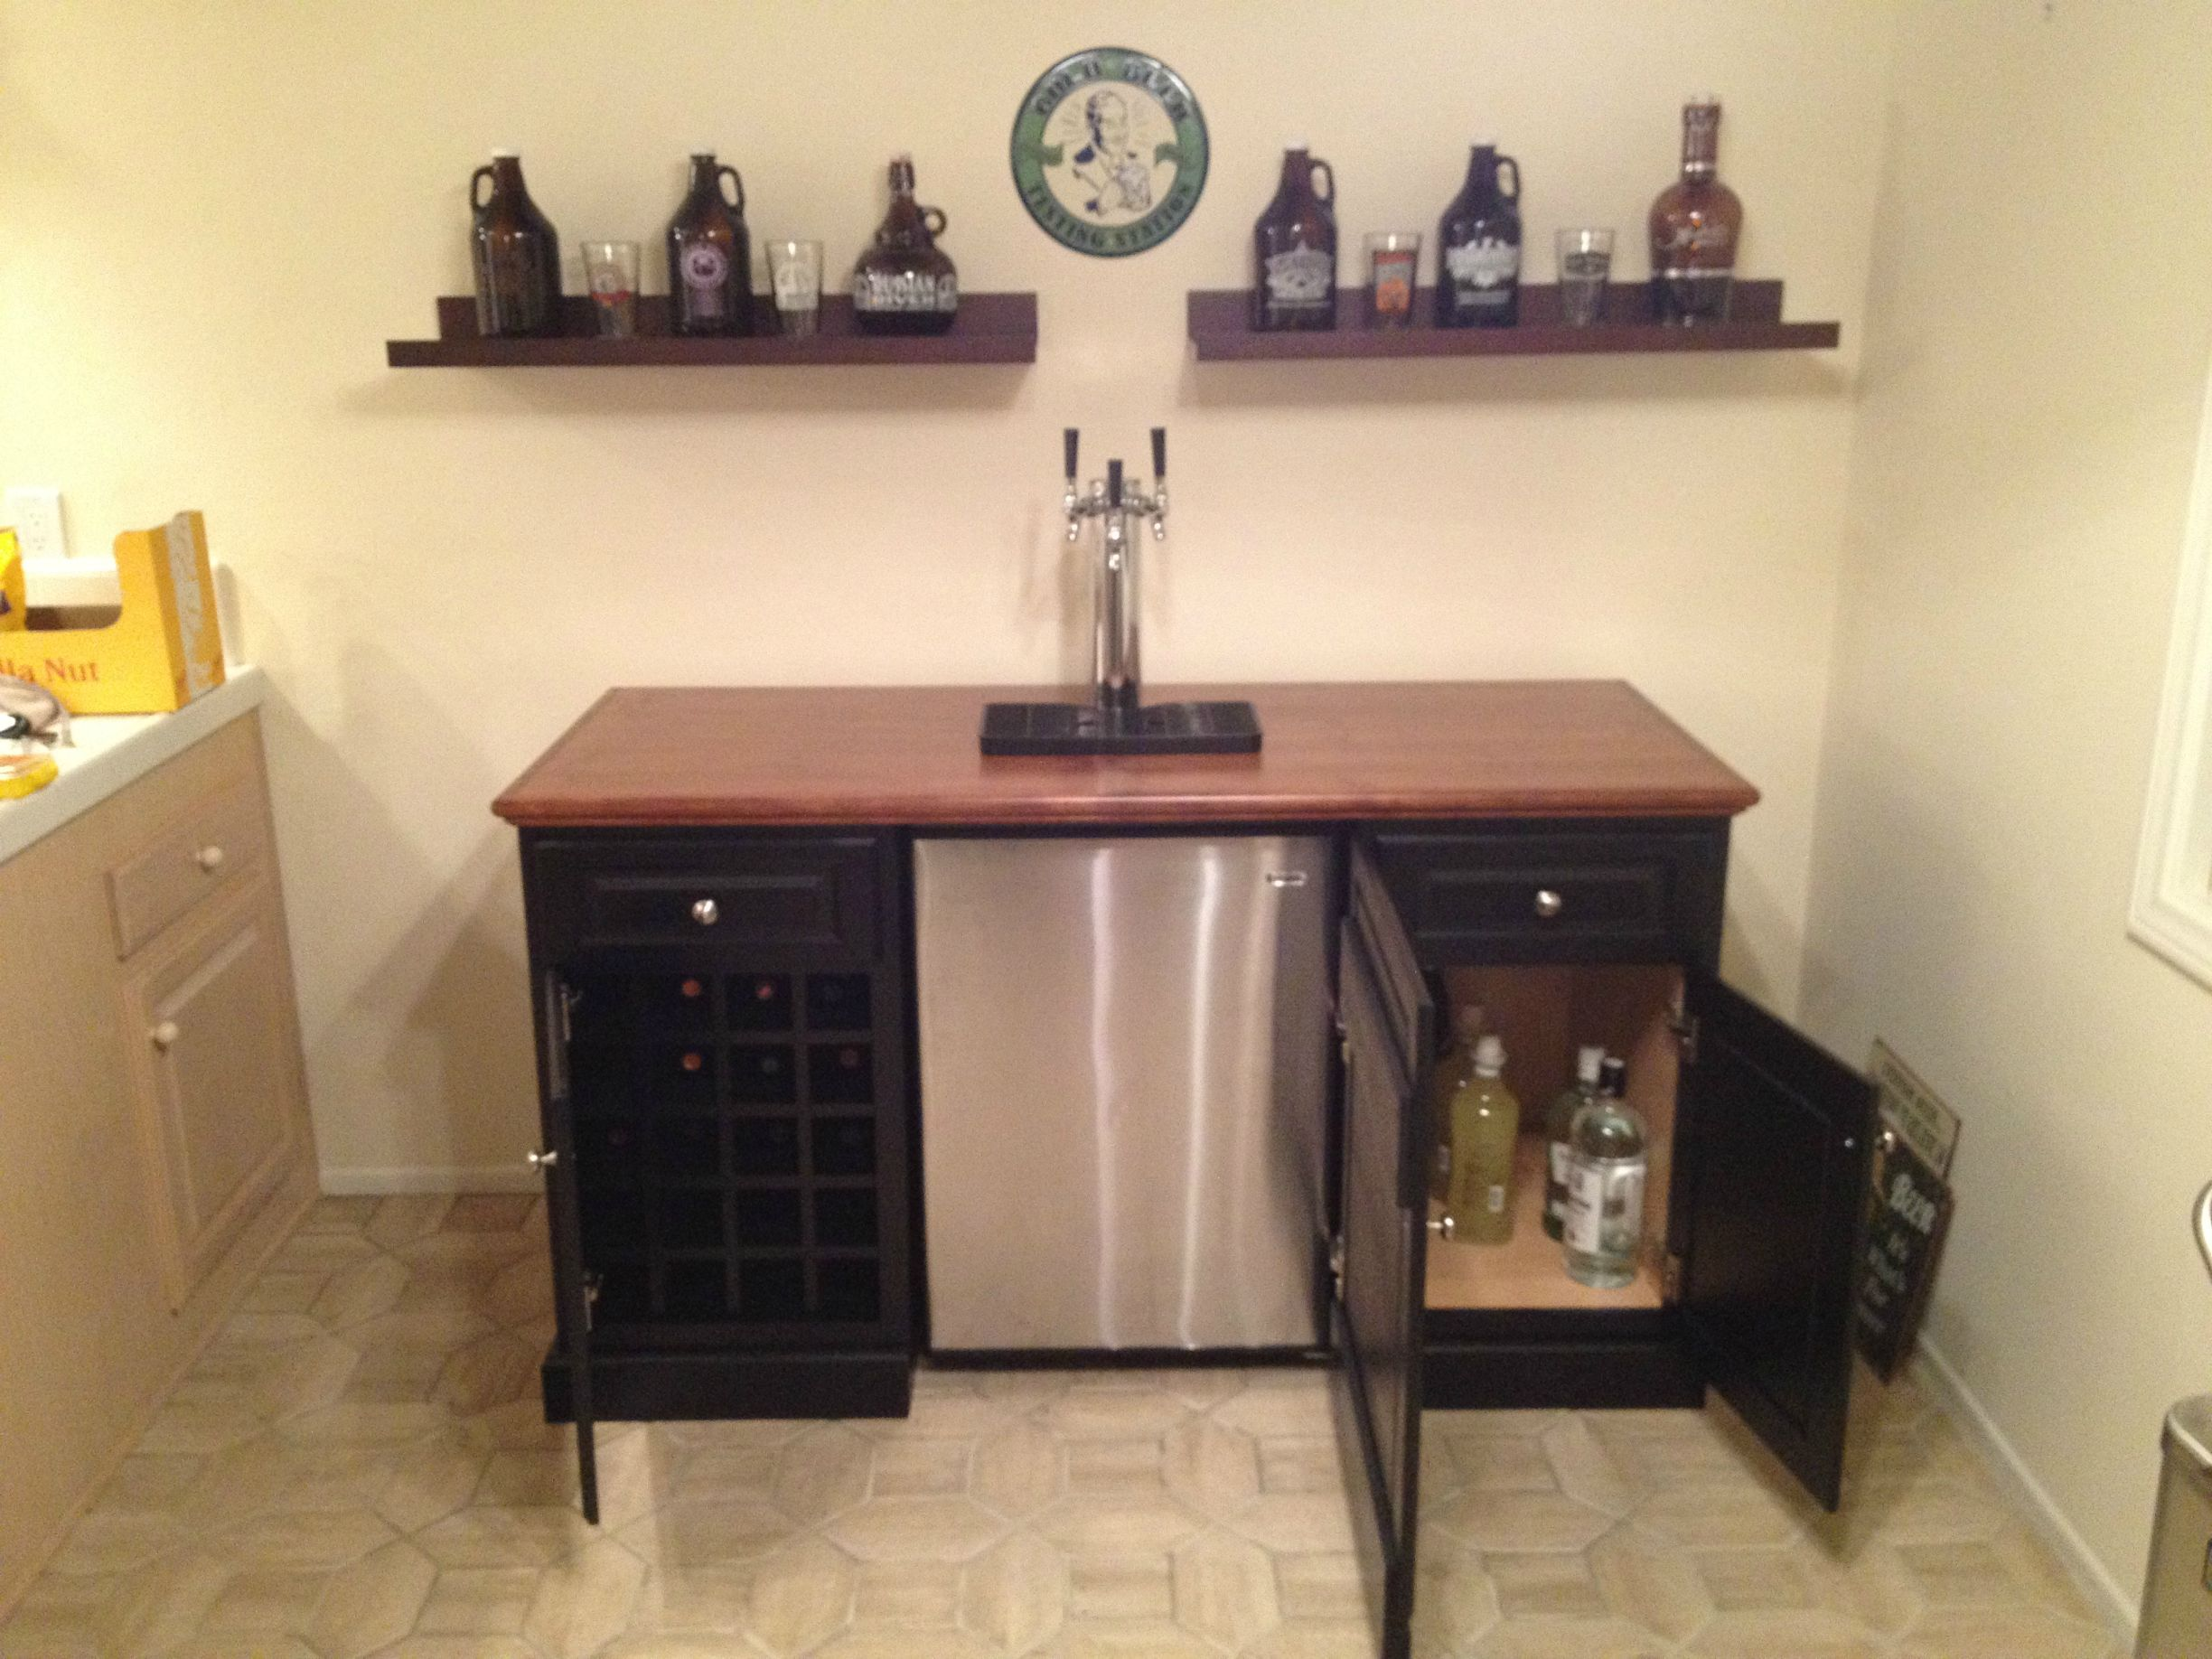 kegerator cabinet in 2018 house and home pinterest ForHome Bar With Kegerator Space